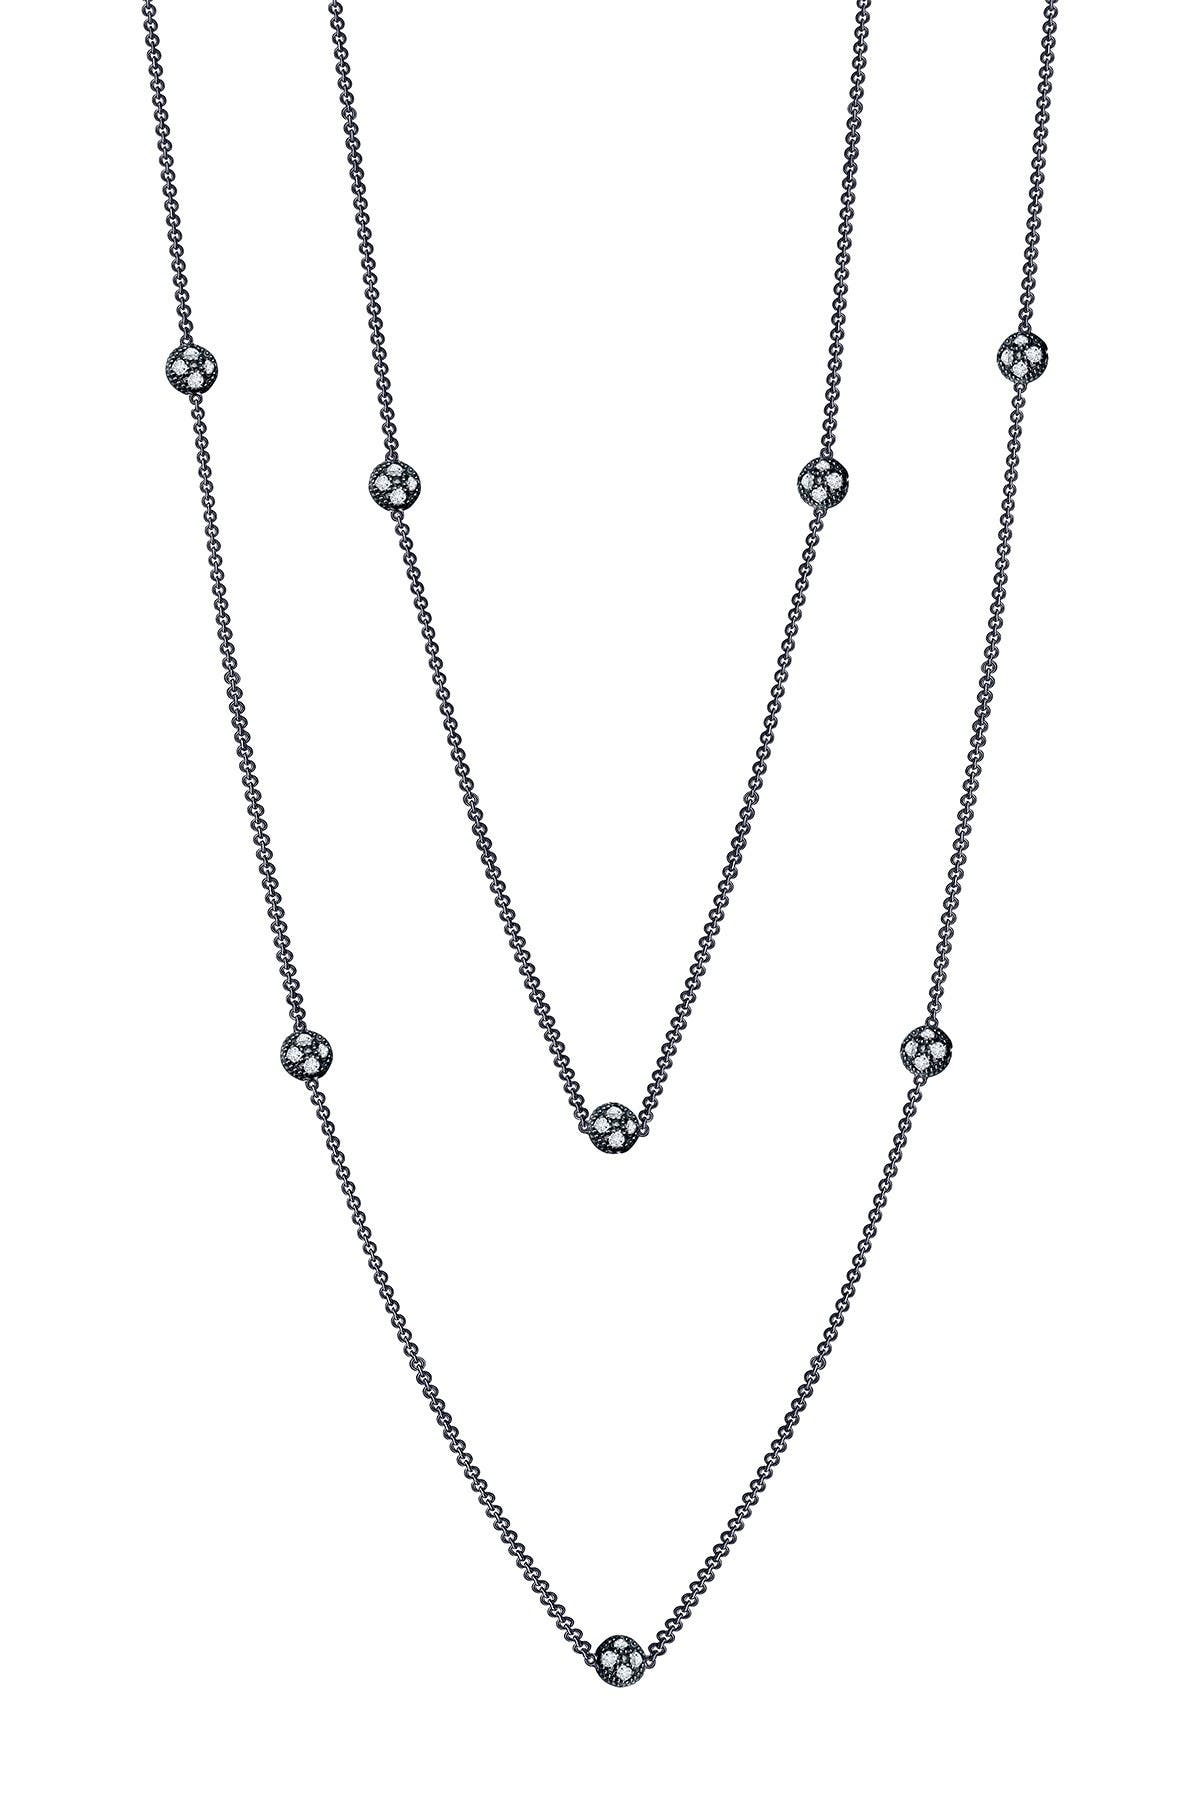 Image of LaFonn Black Rhodium Plated Sterling Silver Simulated Diamond Micro Pave Dots Necklace - 0.78 ctw